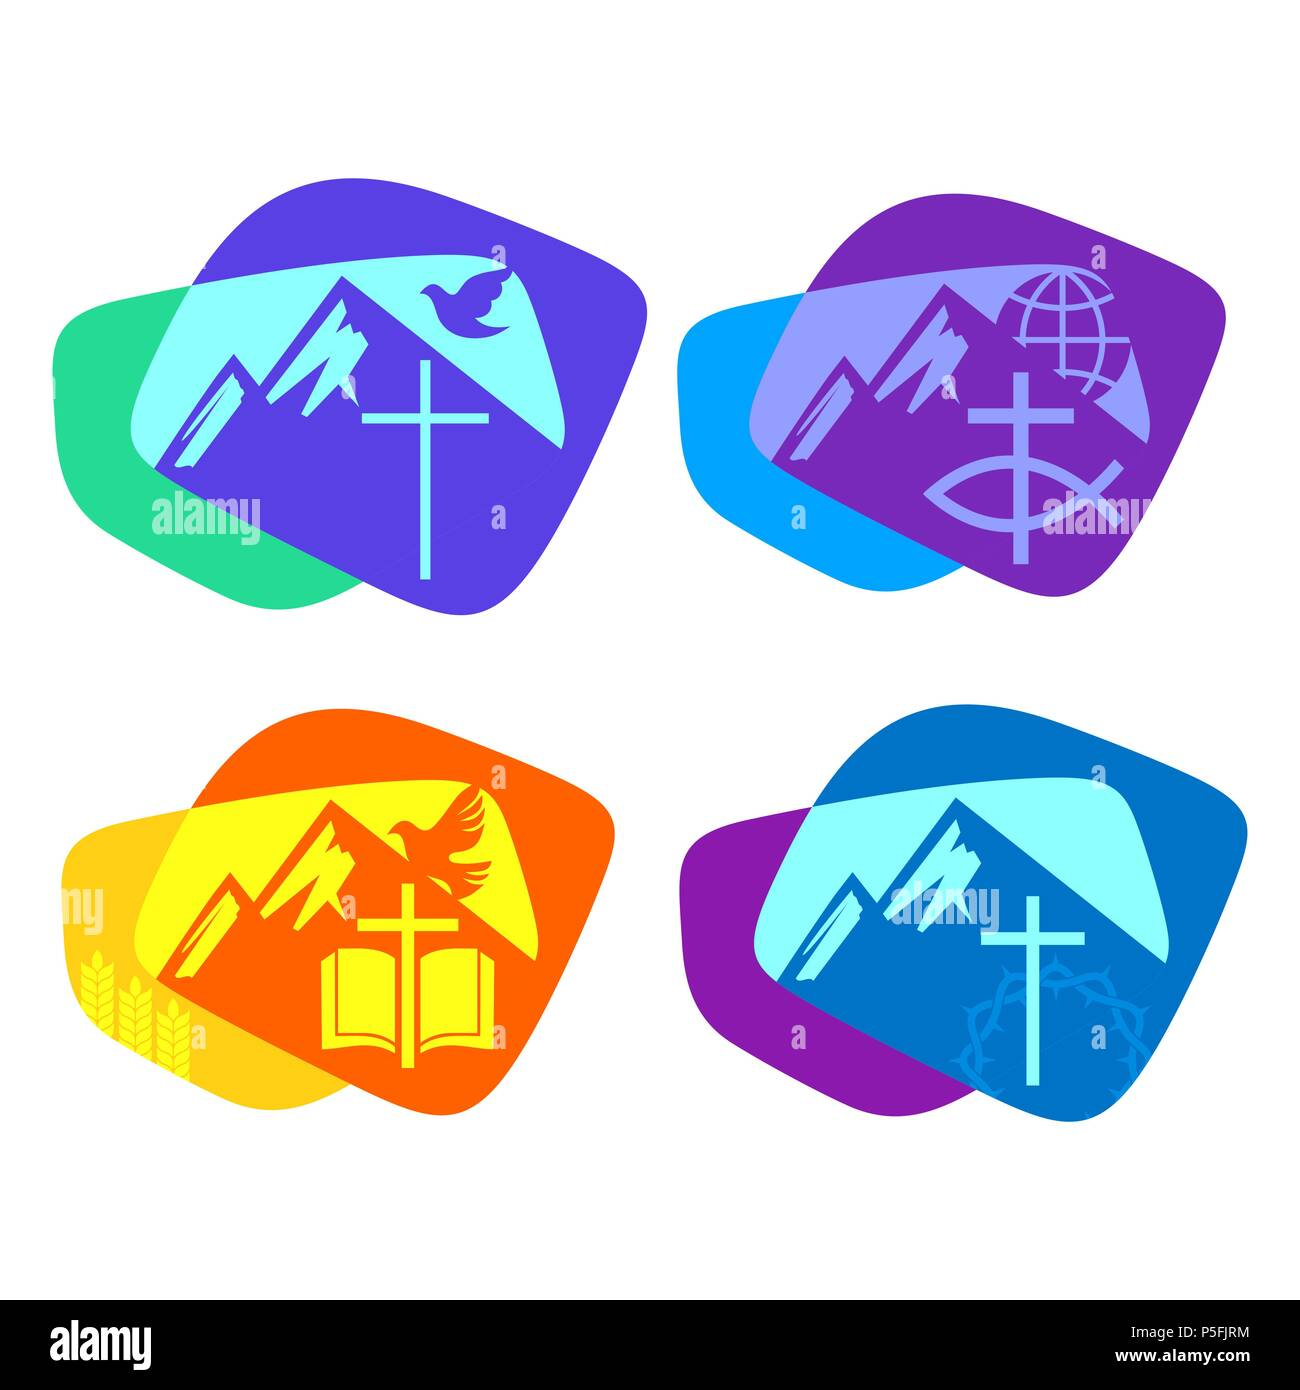 a set of bright colored christian logos for the church ministry